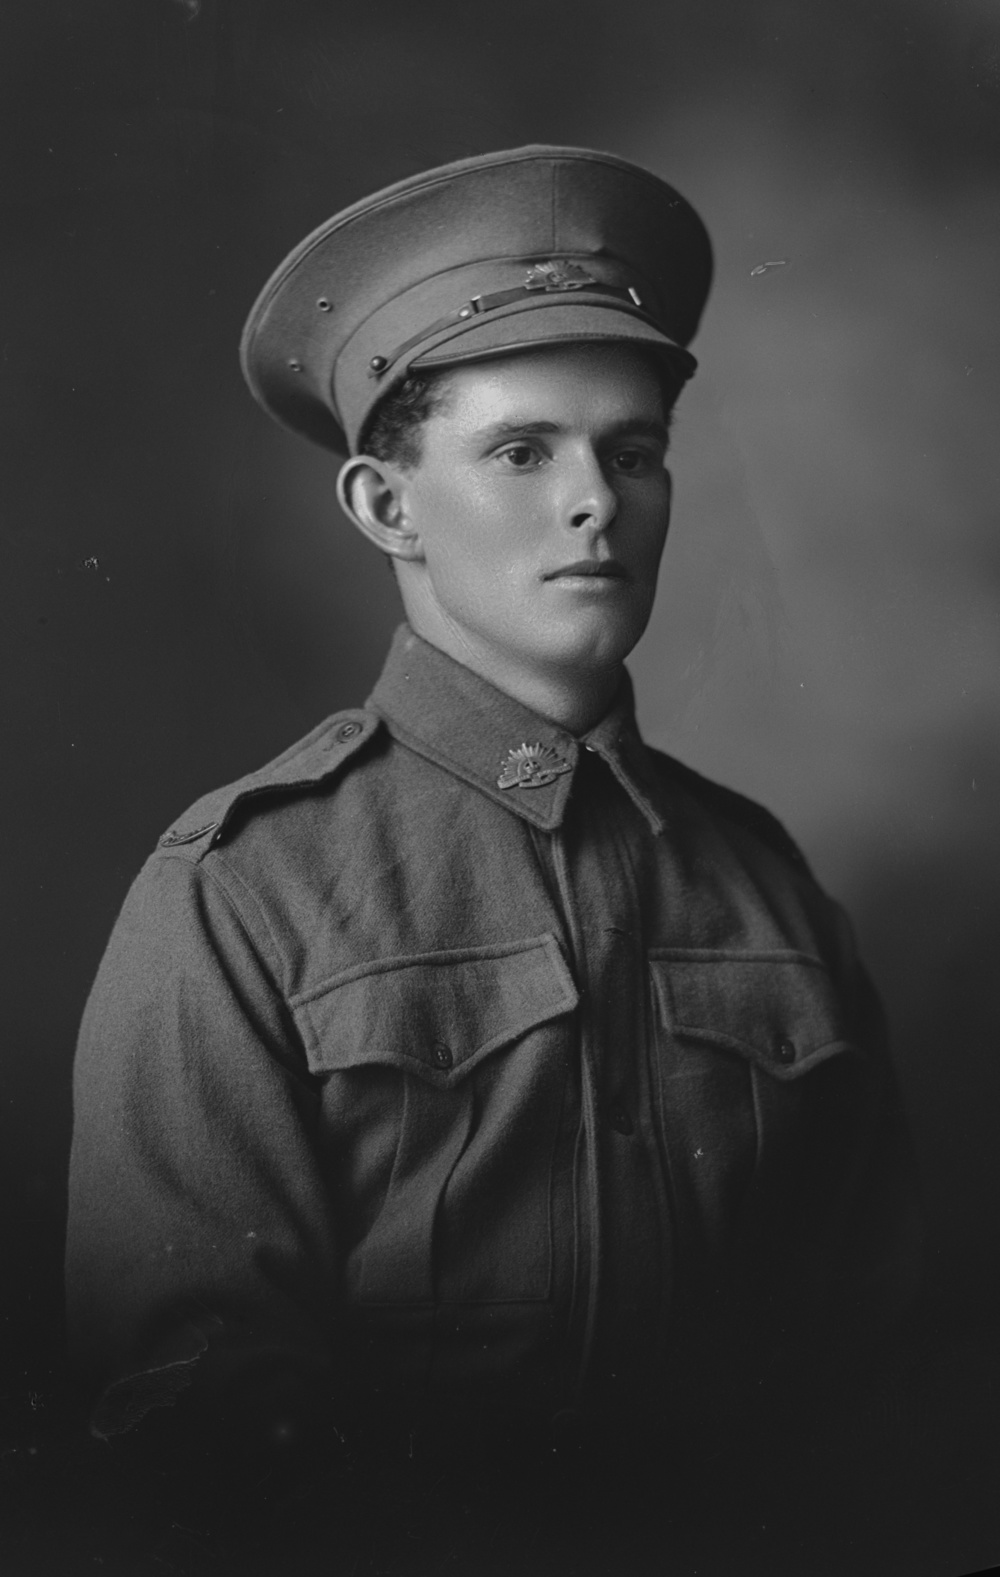 Photographed at the Dease Studio, 117 Barrack Street Perth WA Image courtesy of the State Library of Western Australia: 108409PD